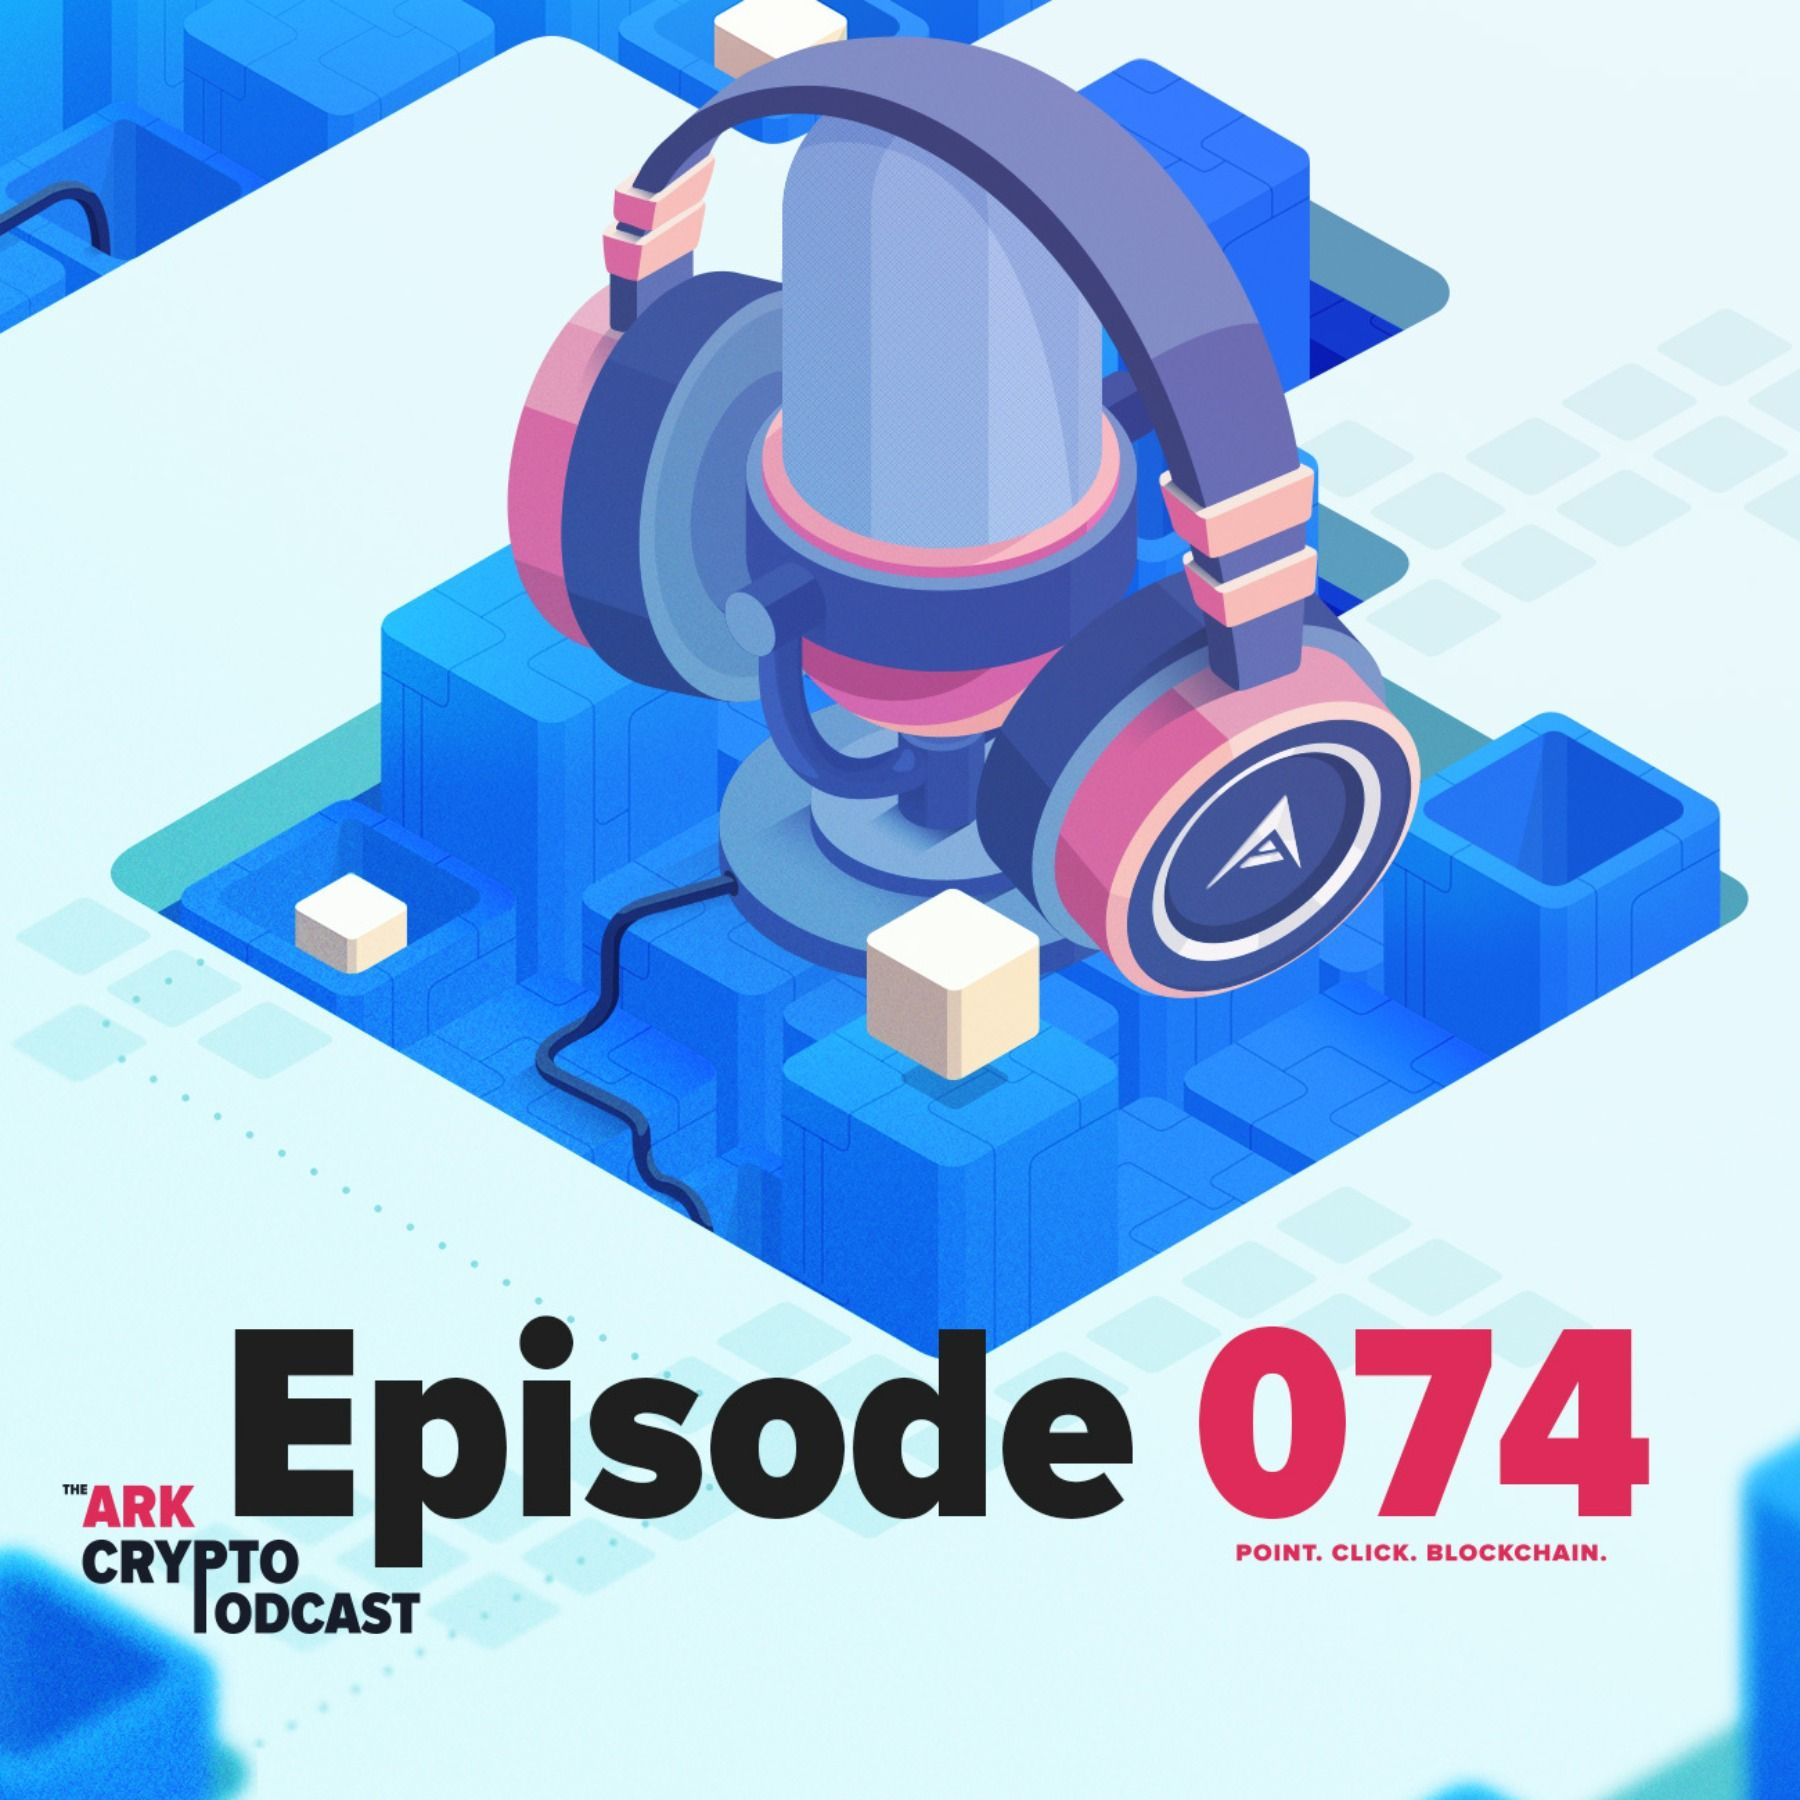 Unikname Interview Part 2 Featuring CTO Damien and Community Manager Florian - ARK Crypto Podcast #074